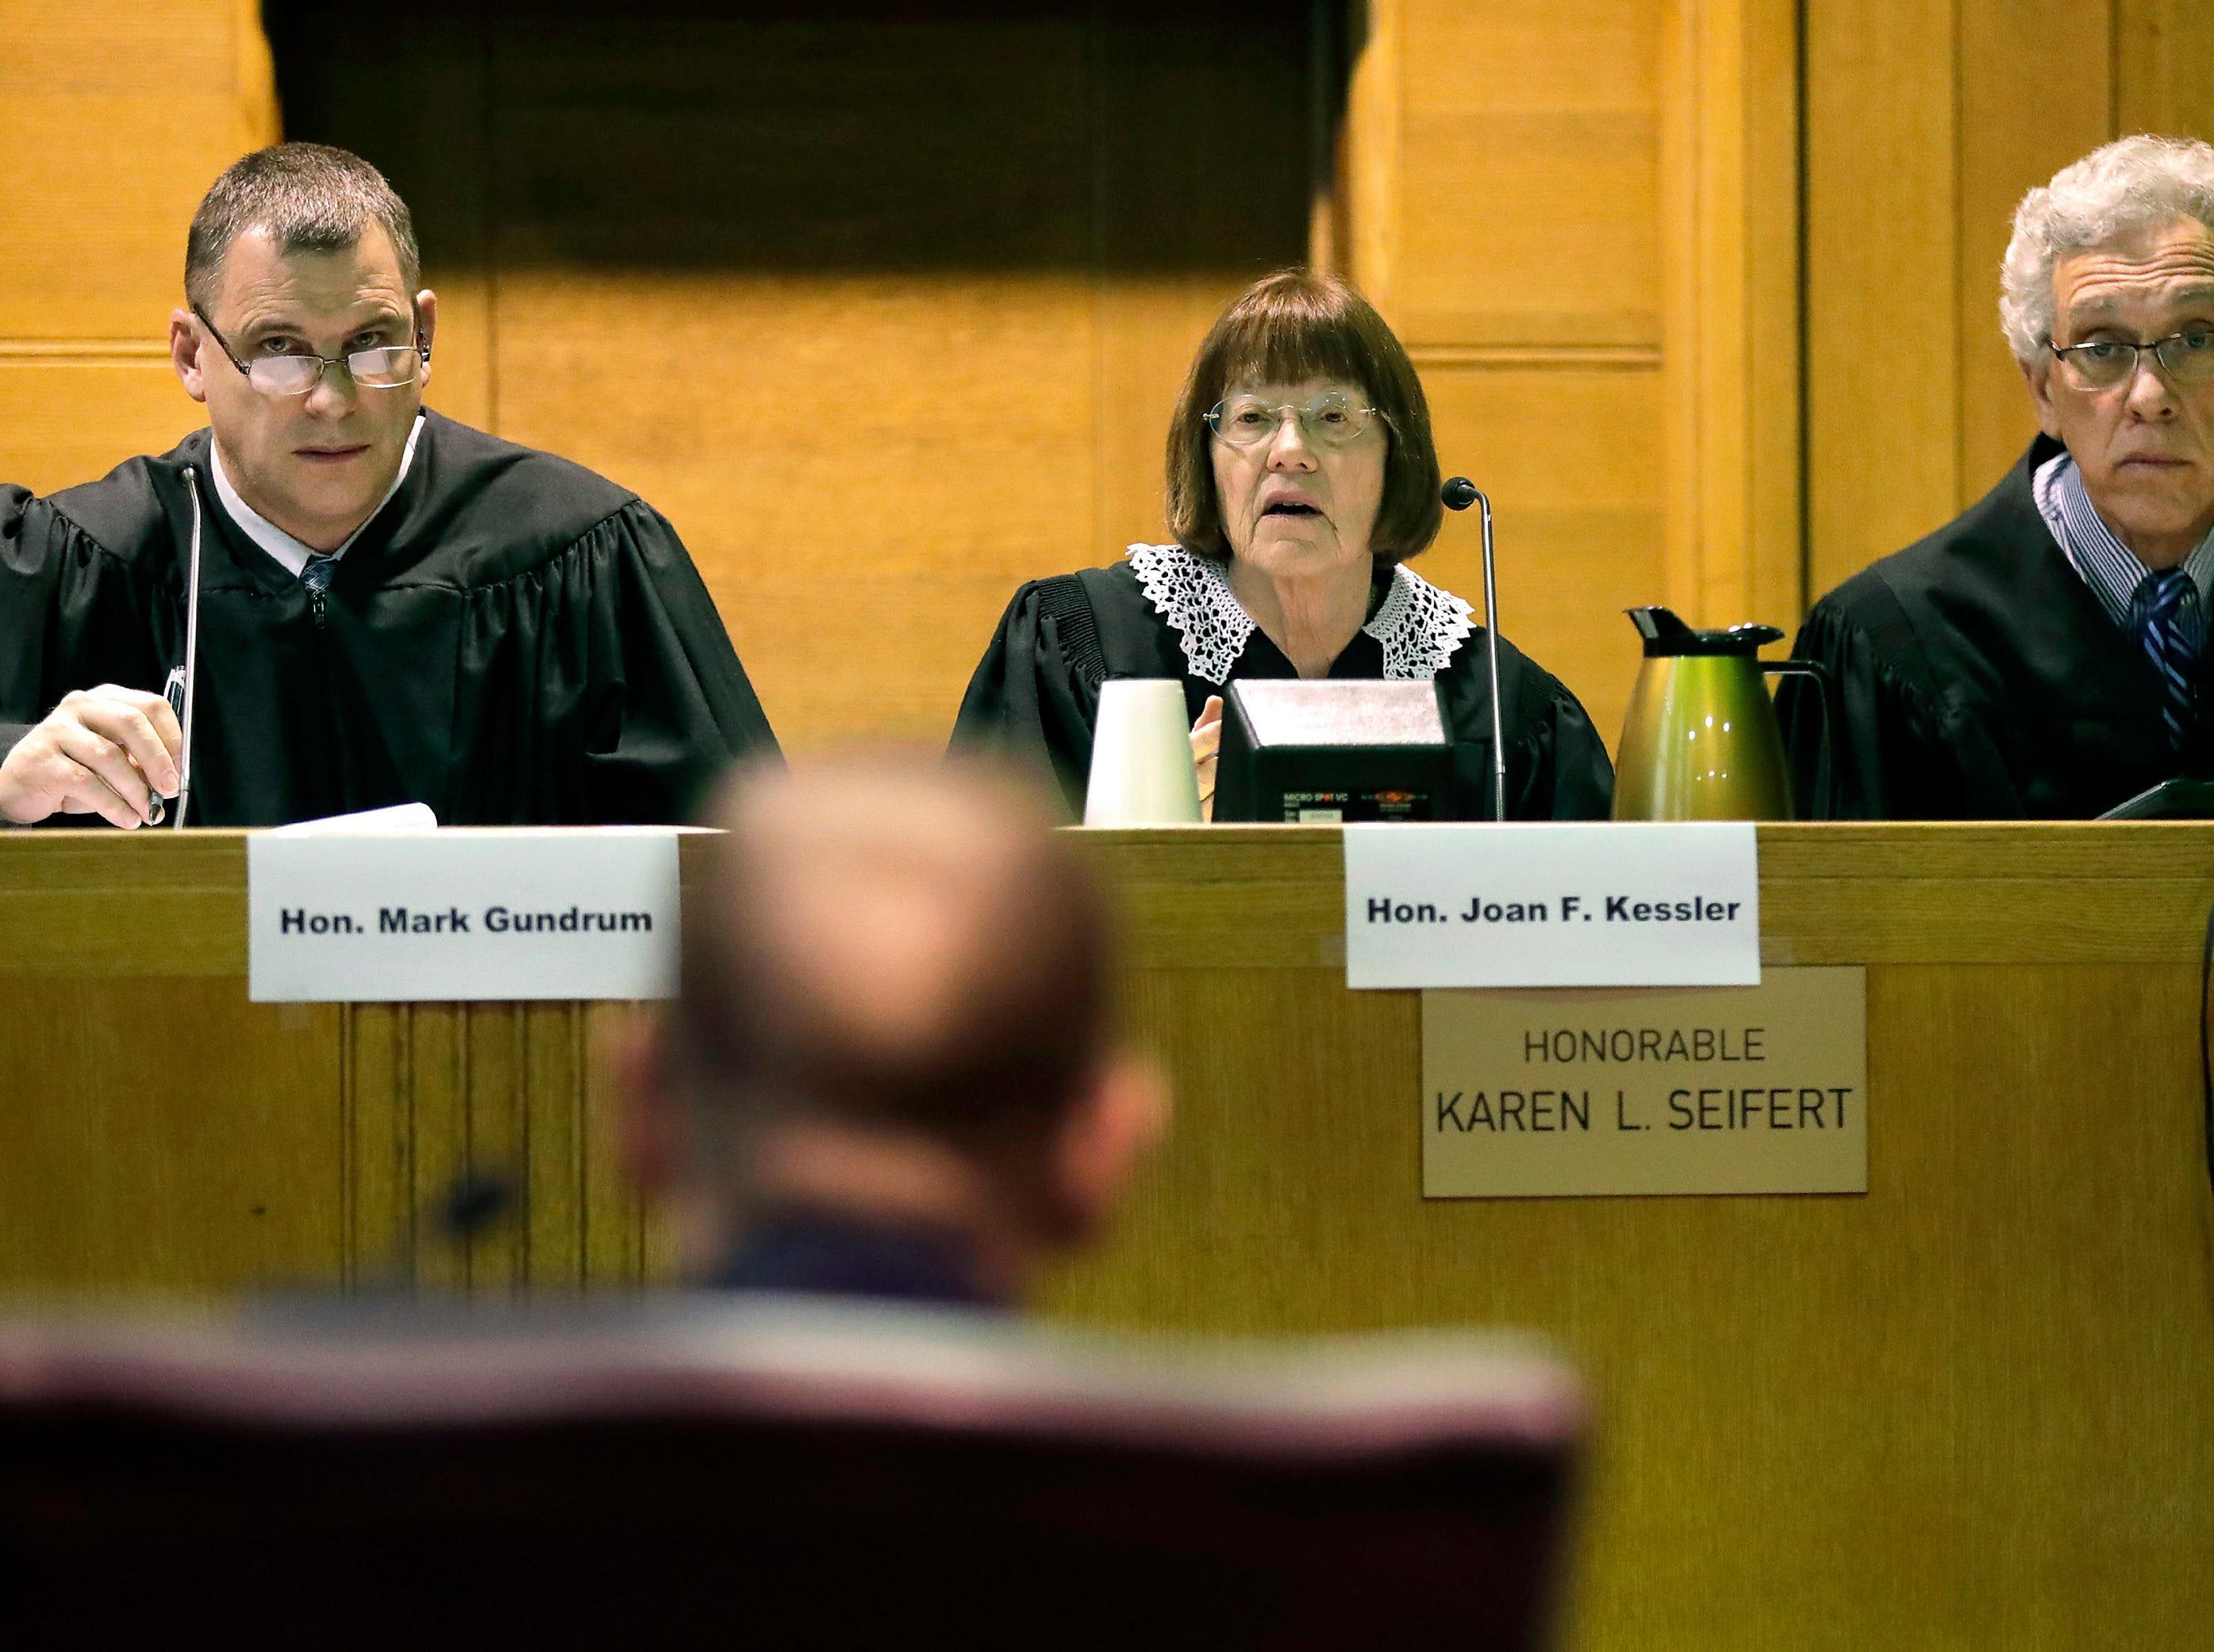 Fox Crossing Municipal Judge Len Kachinsky faces a panel of judges; Hon. Mark Gundrum, Hon. Joan F. Kessler and Hon. William Brash III, during a Judicial Commission disciplinary hearing on Thursday, February 7, 2019, at the Winnebago County Courthouse in Oshkosh, Wis.